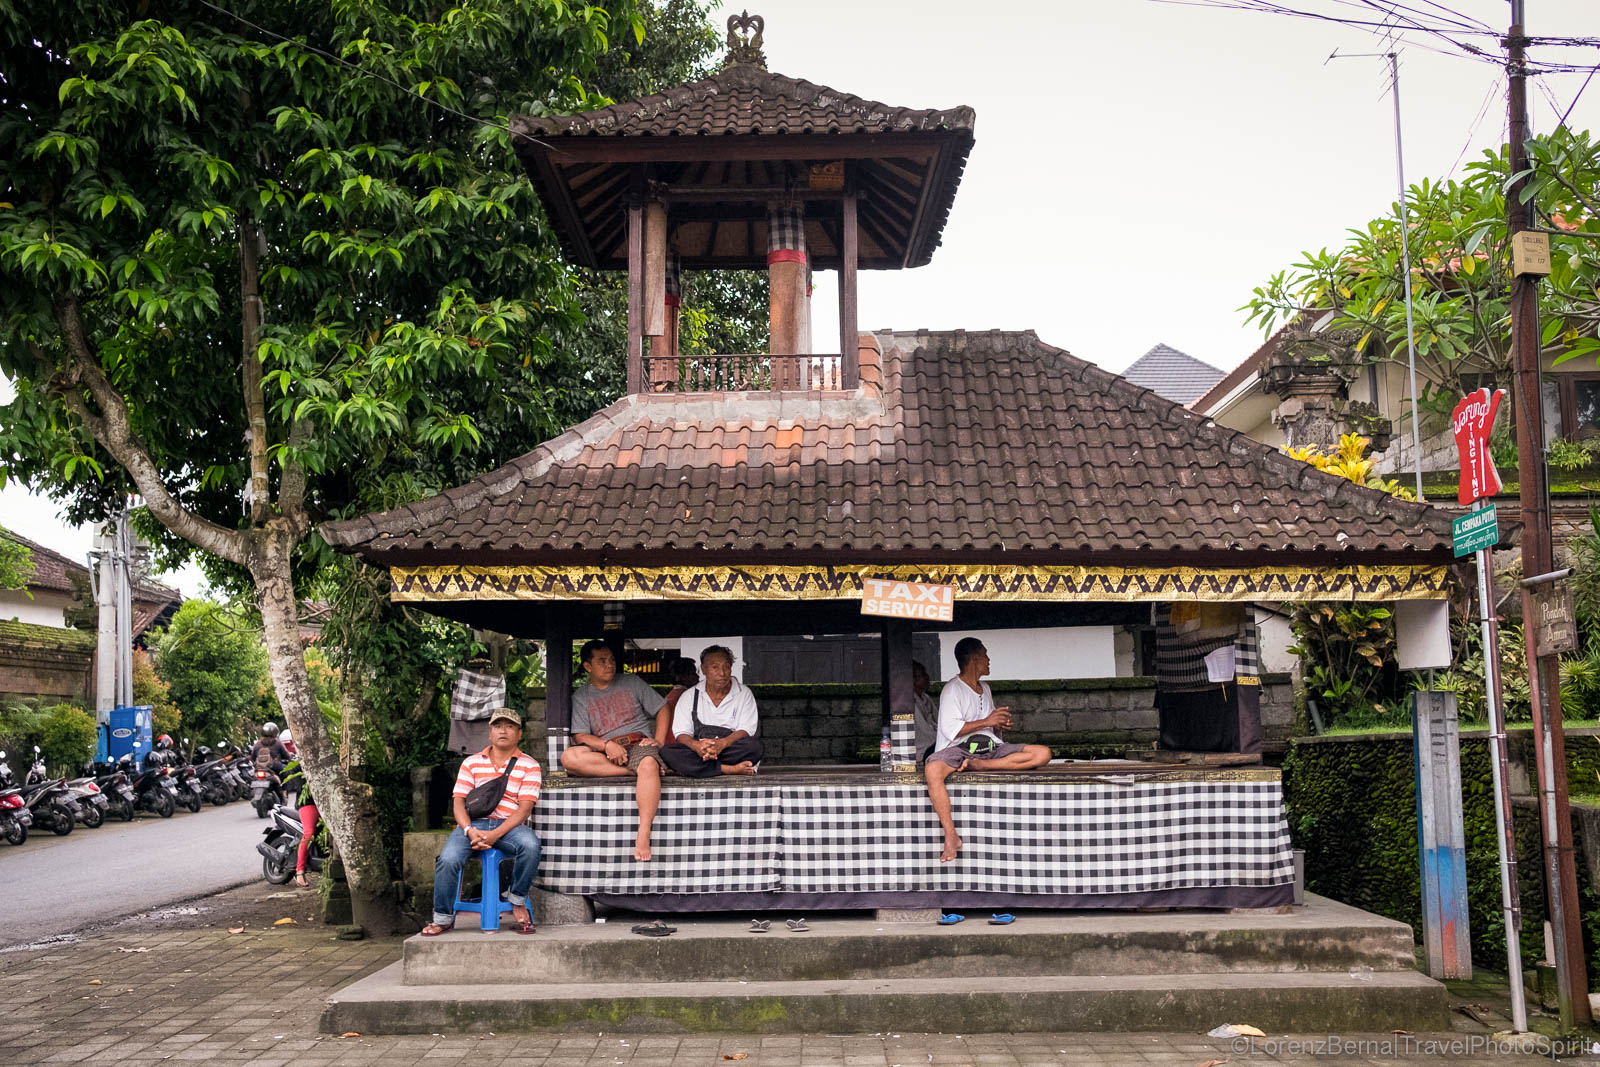 Local temple wrapped in the holy black and white Poleng, in Bali, Indonesia.